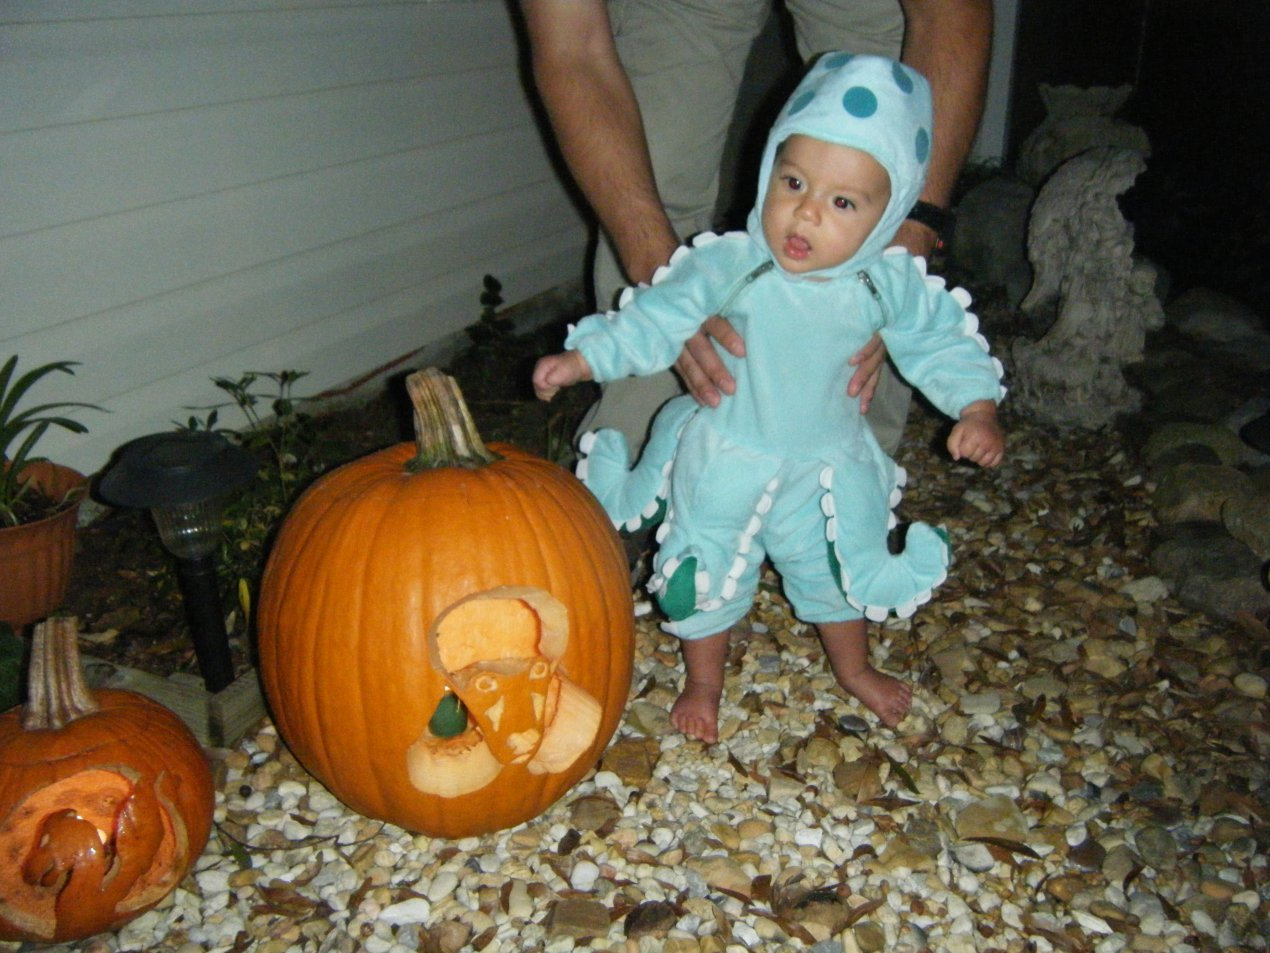 Baby Nicholas' First Halloween and updates-2010_1031firsthalloween0026.jpg